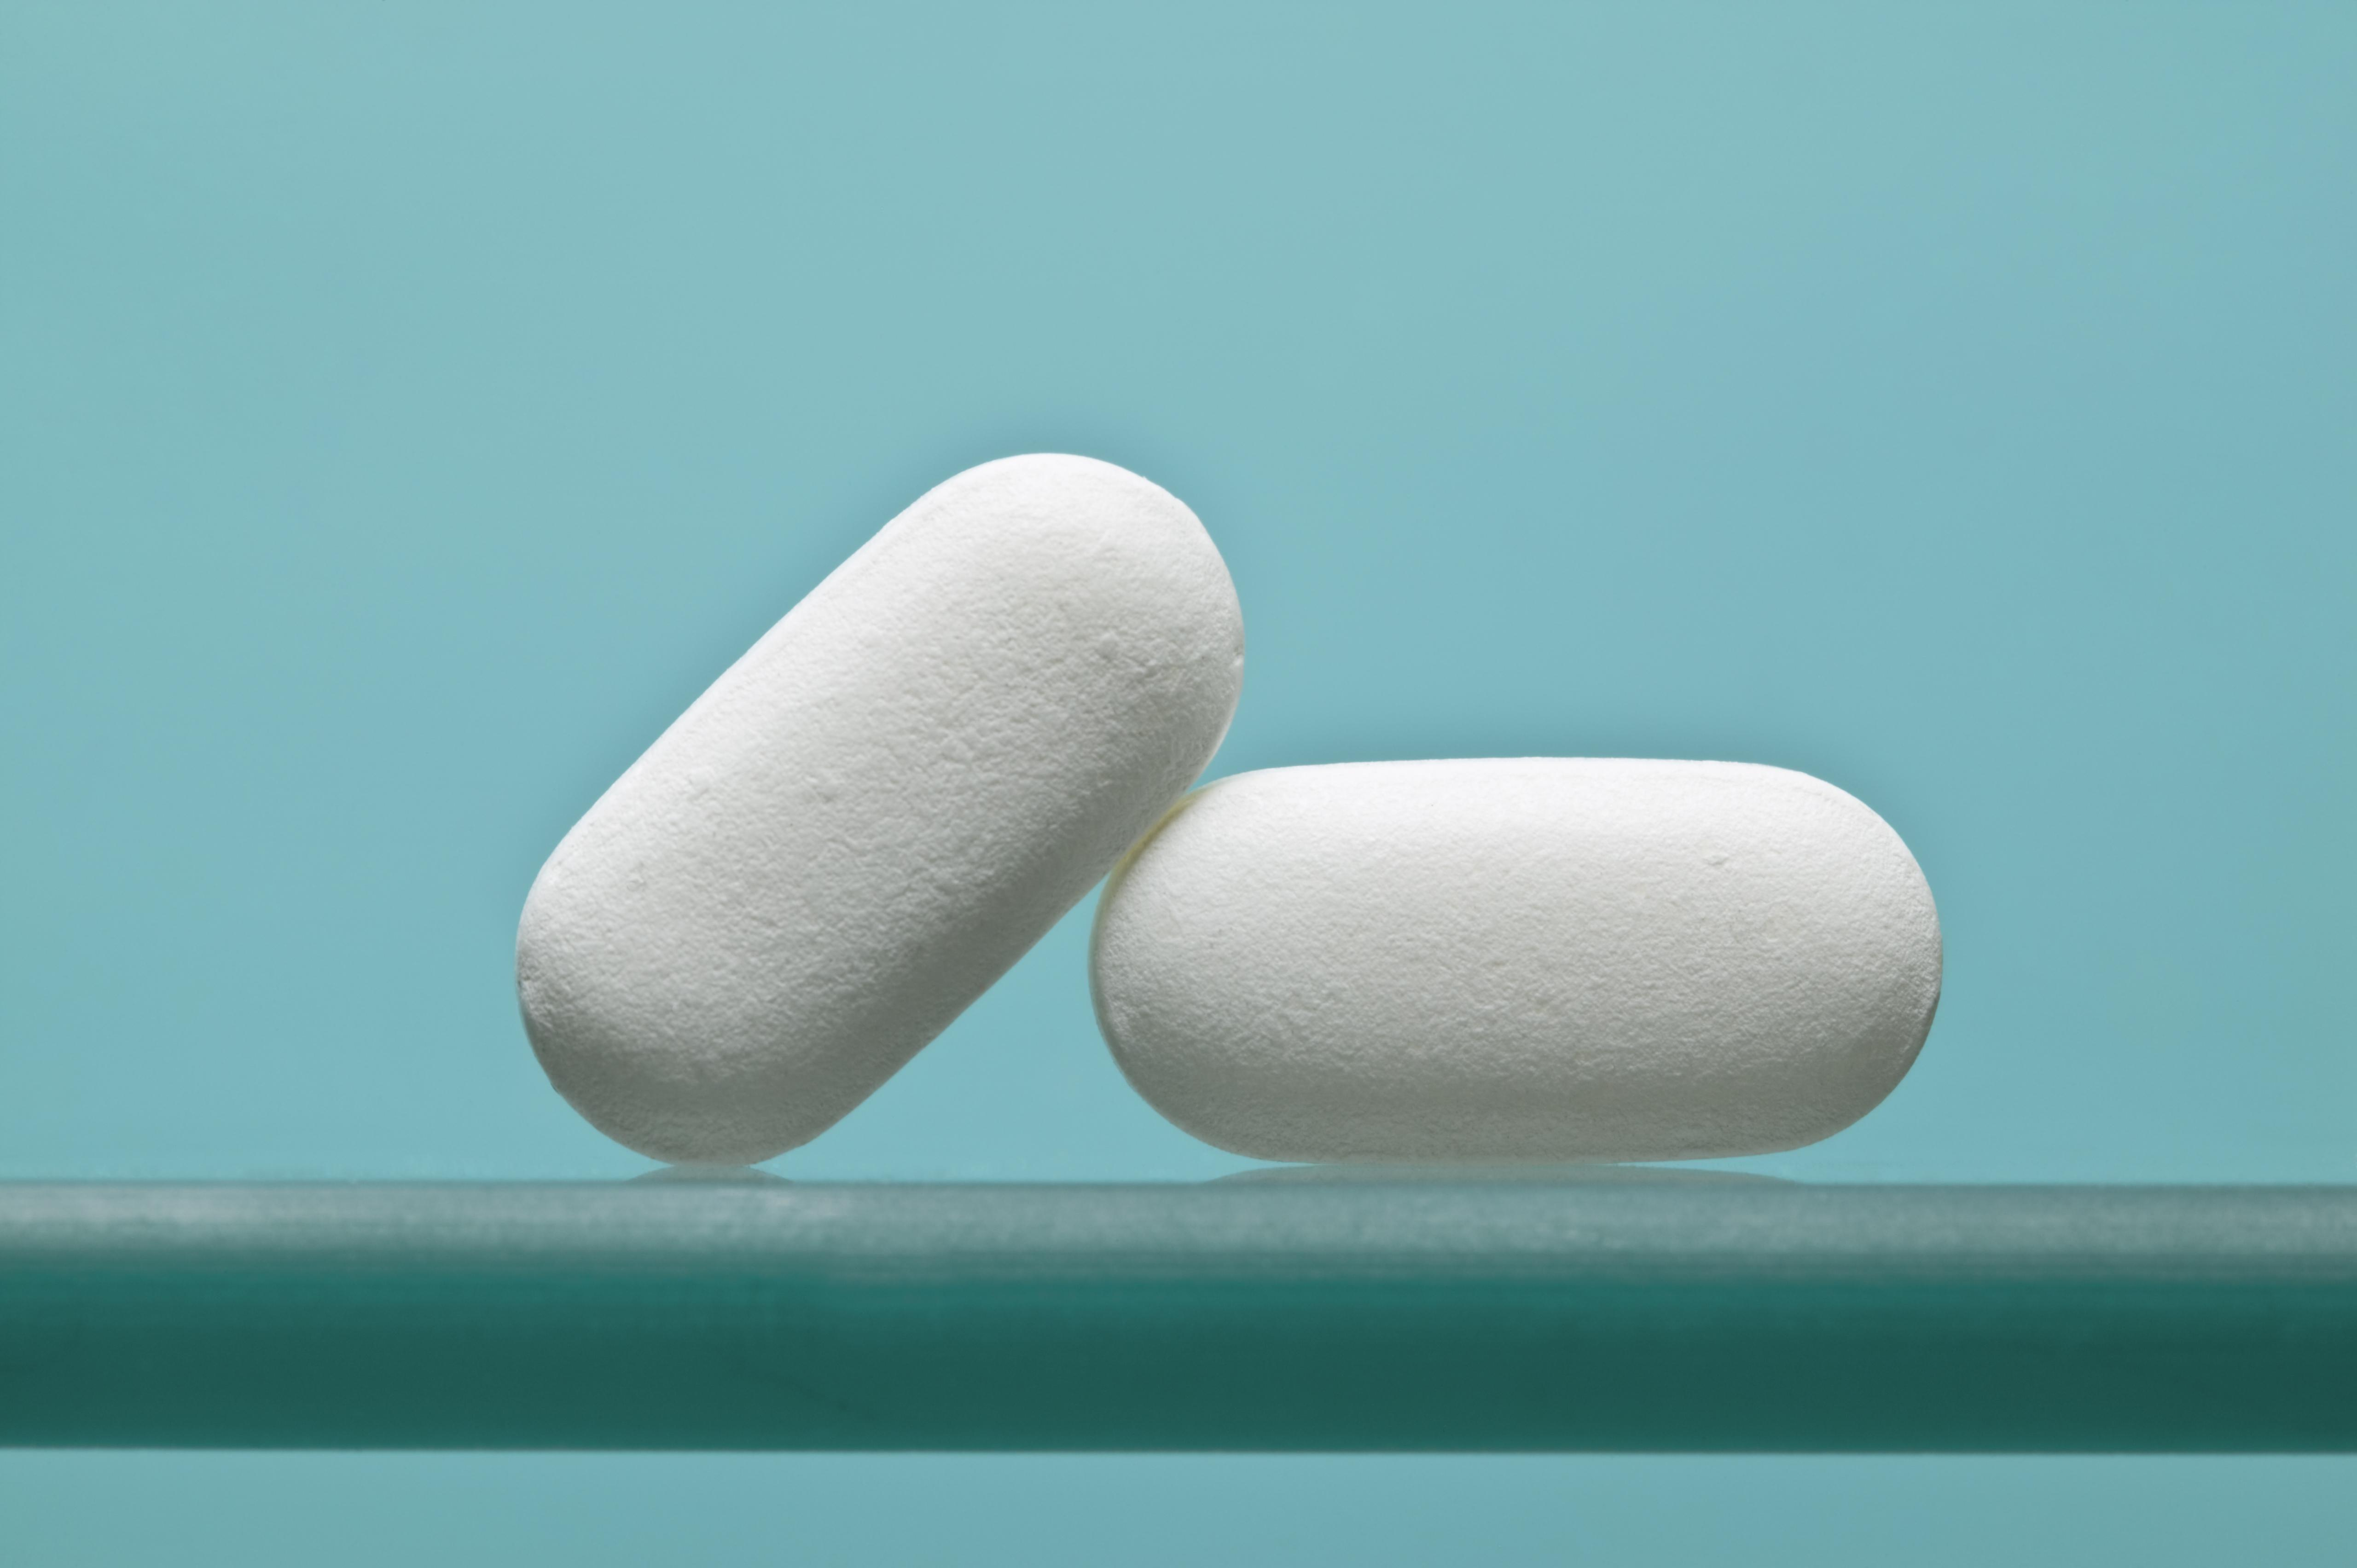 Two pills leaning against each other